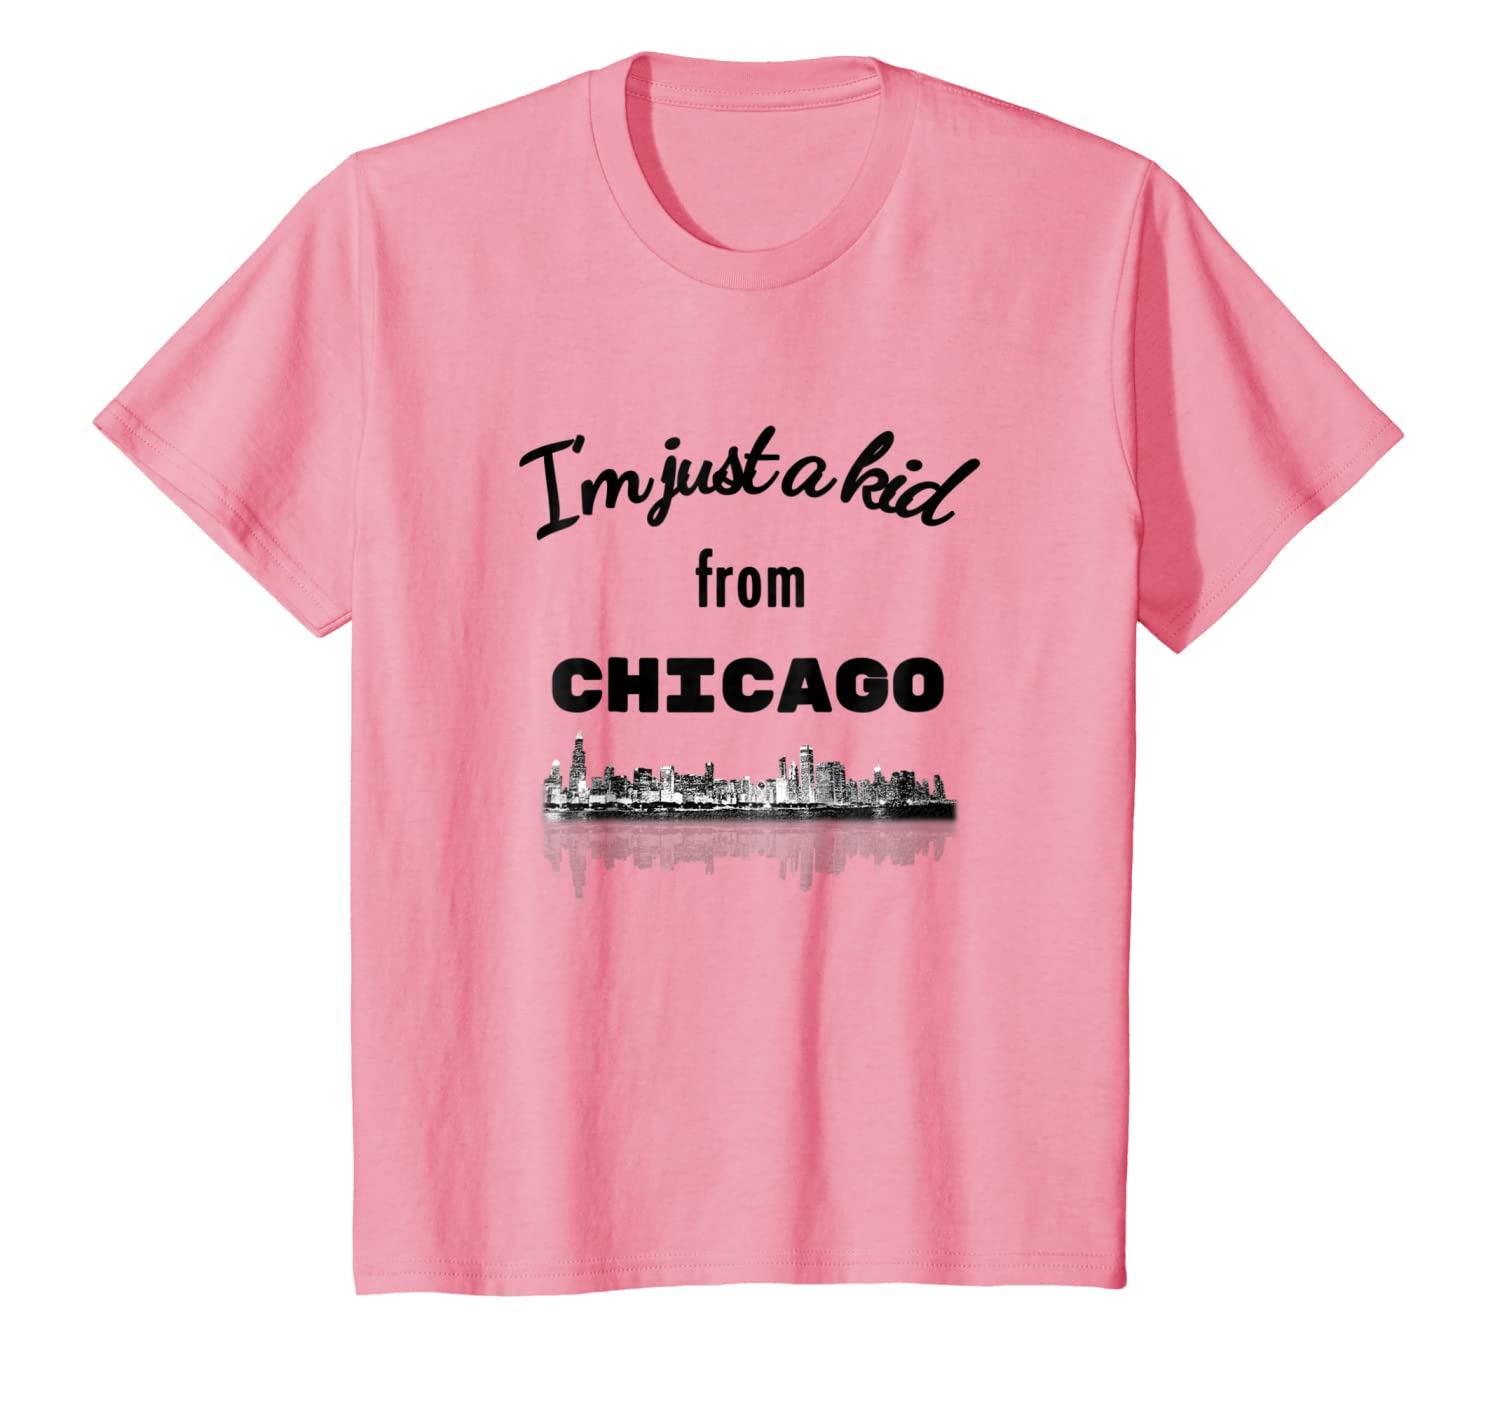 Im Just A Kid From Chicago with Chicago Skyline T-Shirt